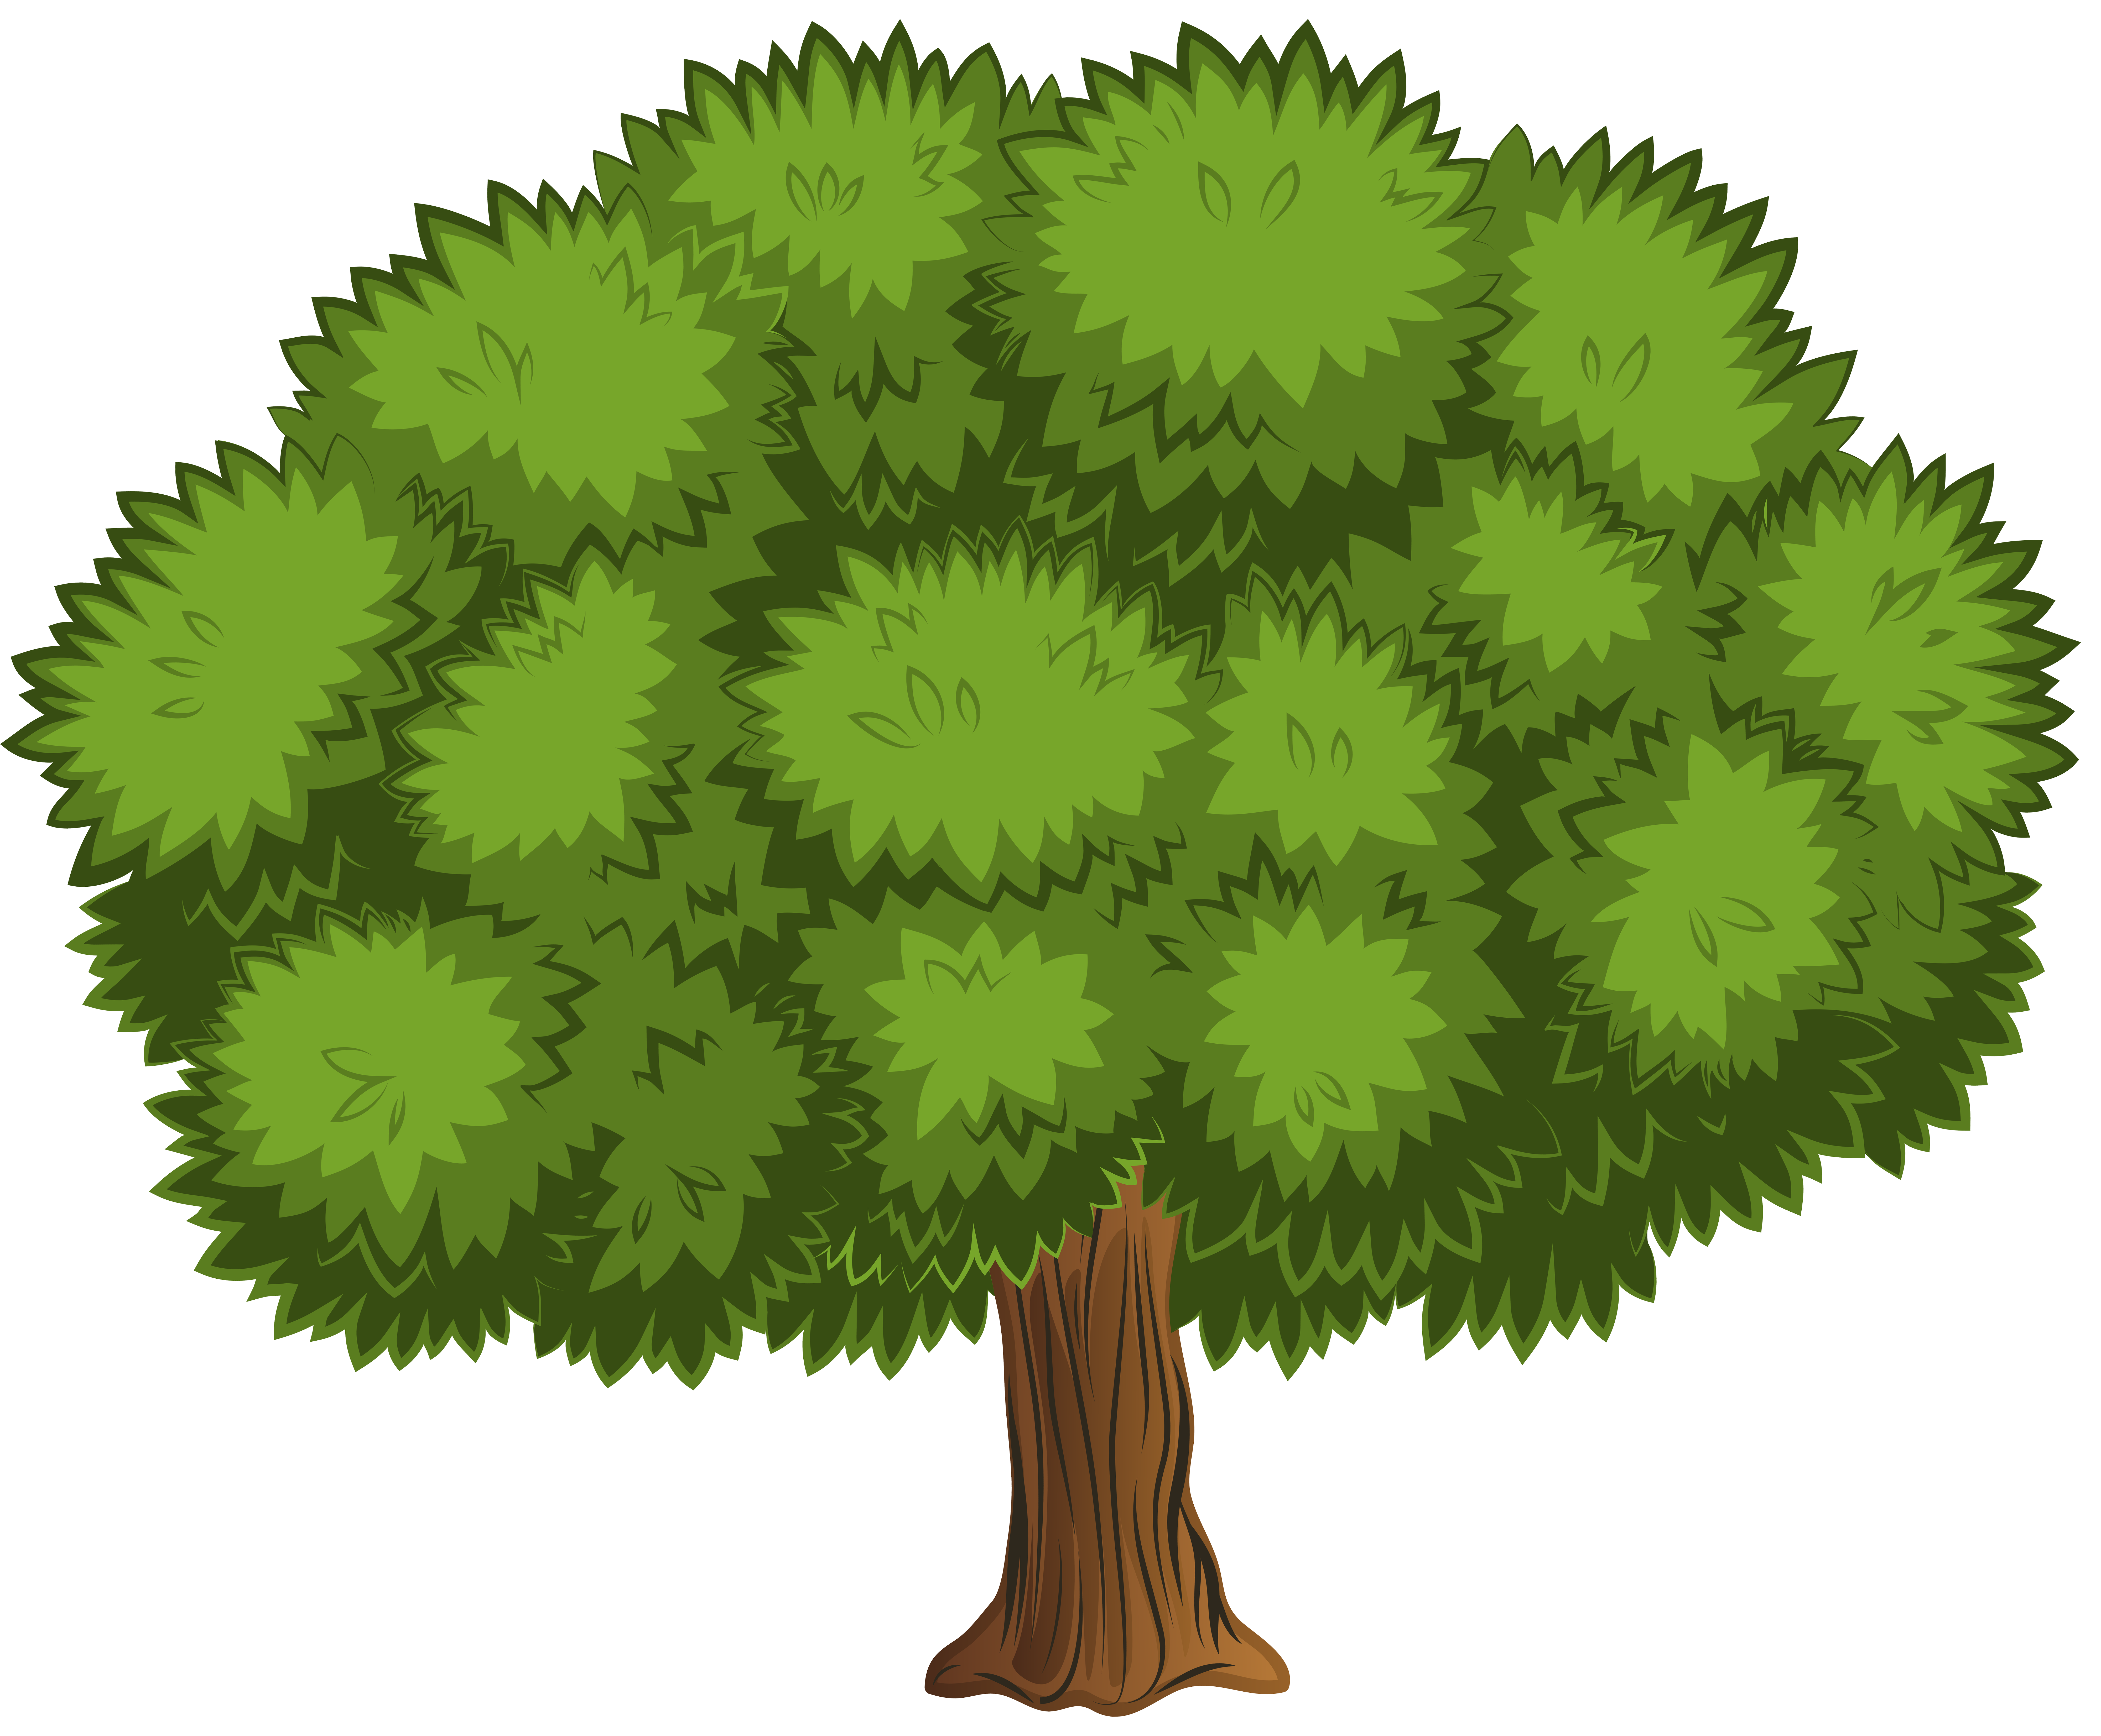 Clip Arts Related To : Large Tree PNG Clip Art Image - Tree Clipart PNG